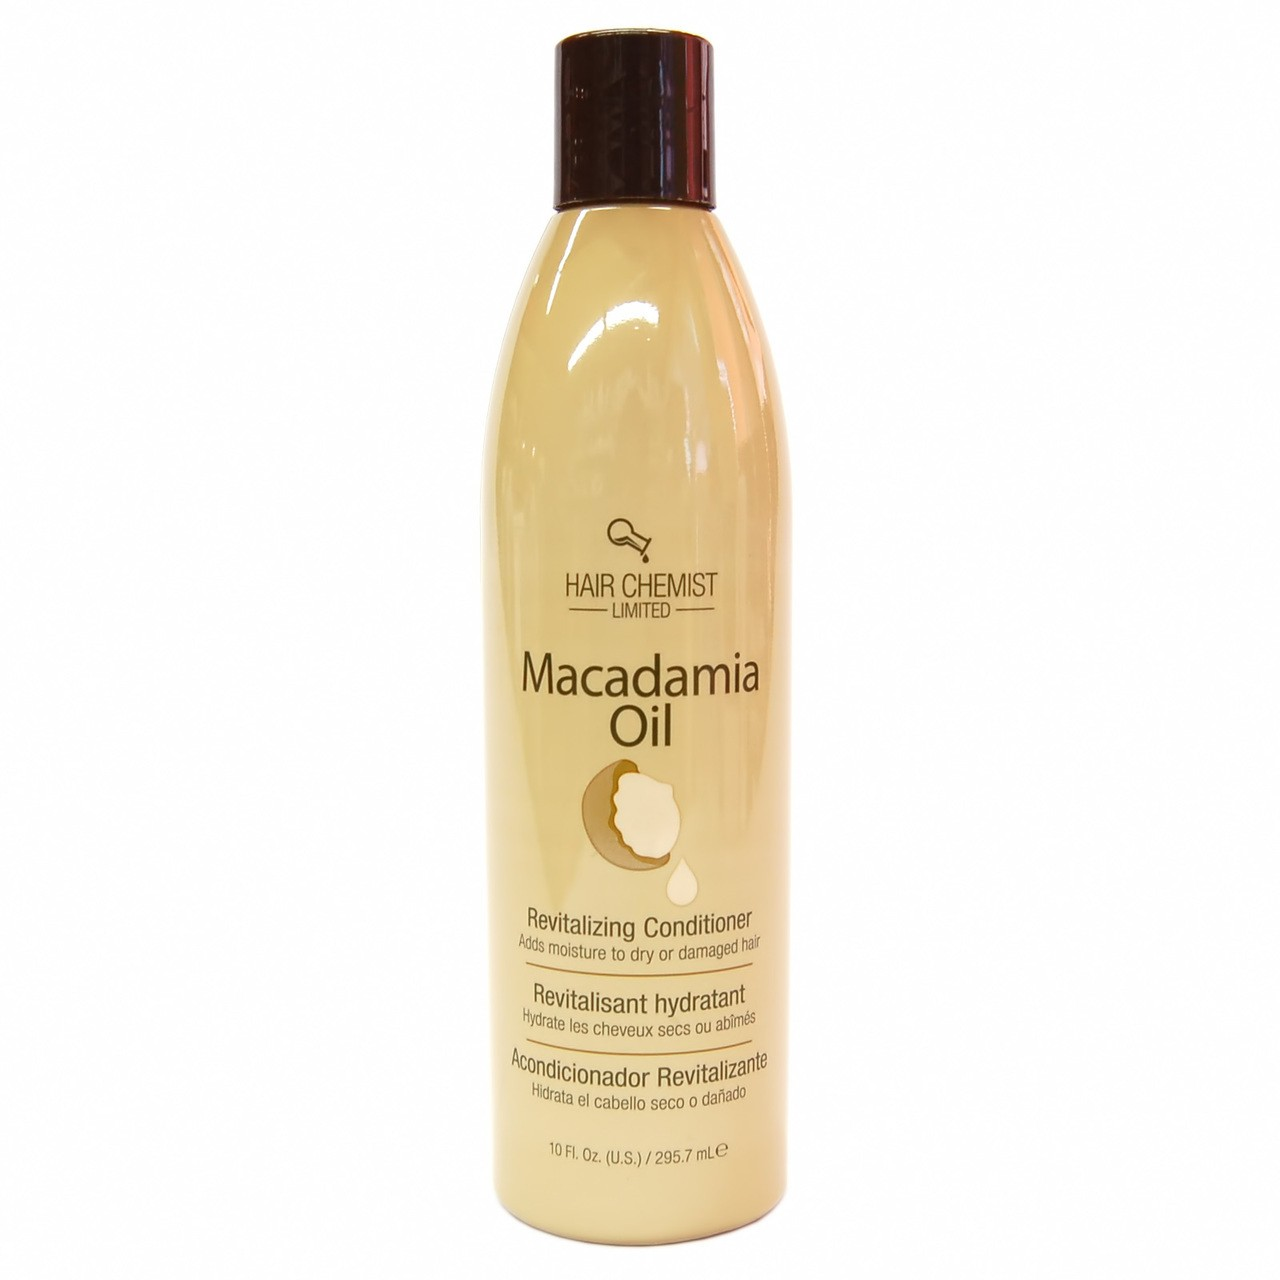 Hair Chemist  Macadamia Oil Revitalizing Conditioner - Après-Shampooing Quotidien Tous Types de Cheveux 295.7 ml